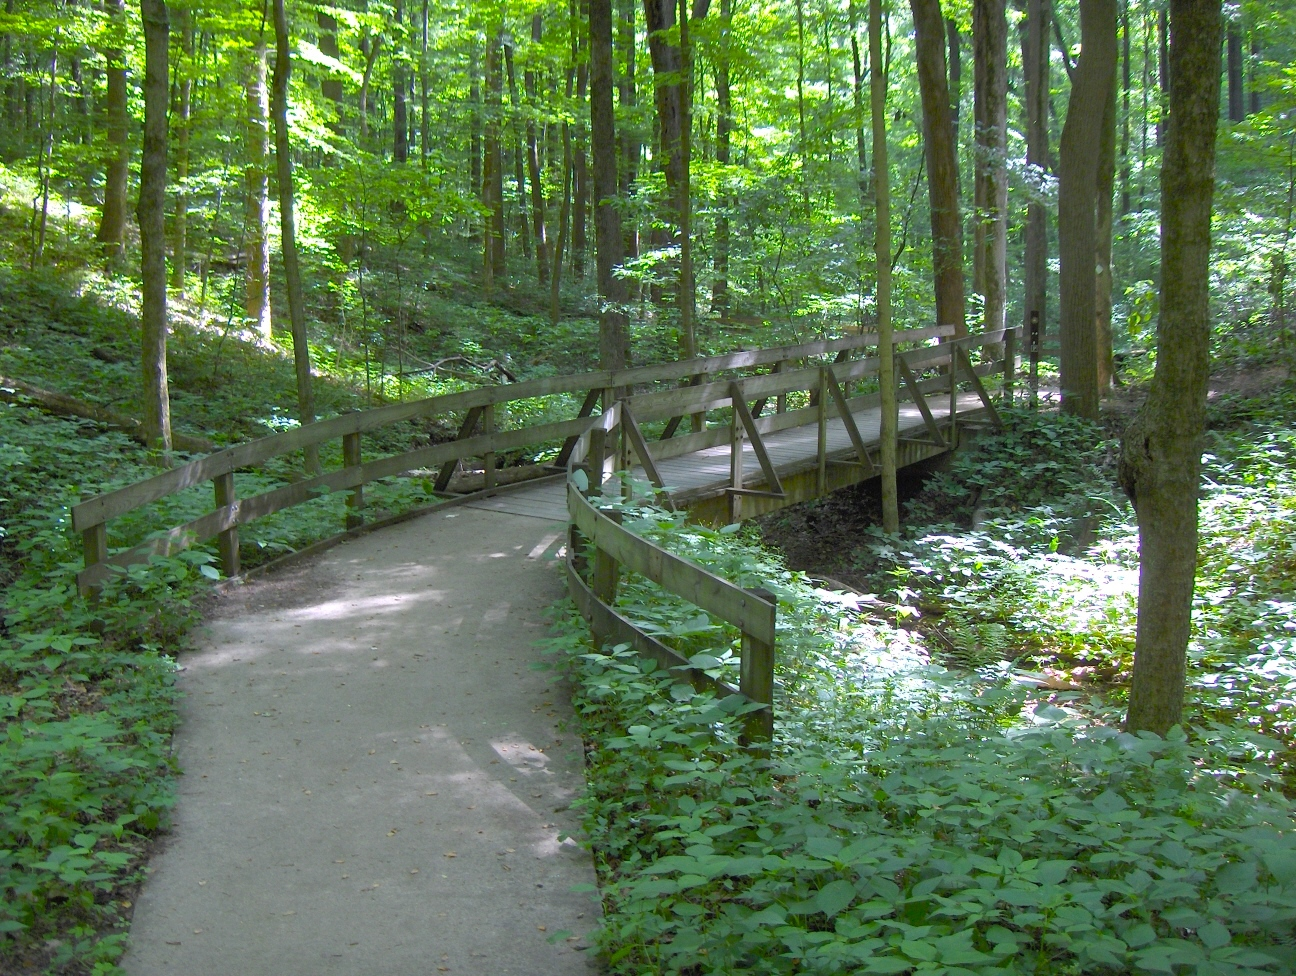 Walking trail and wood bridge through forest